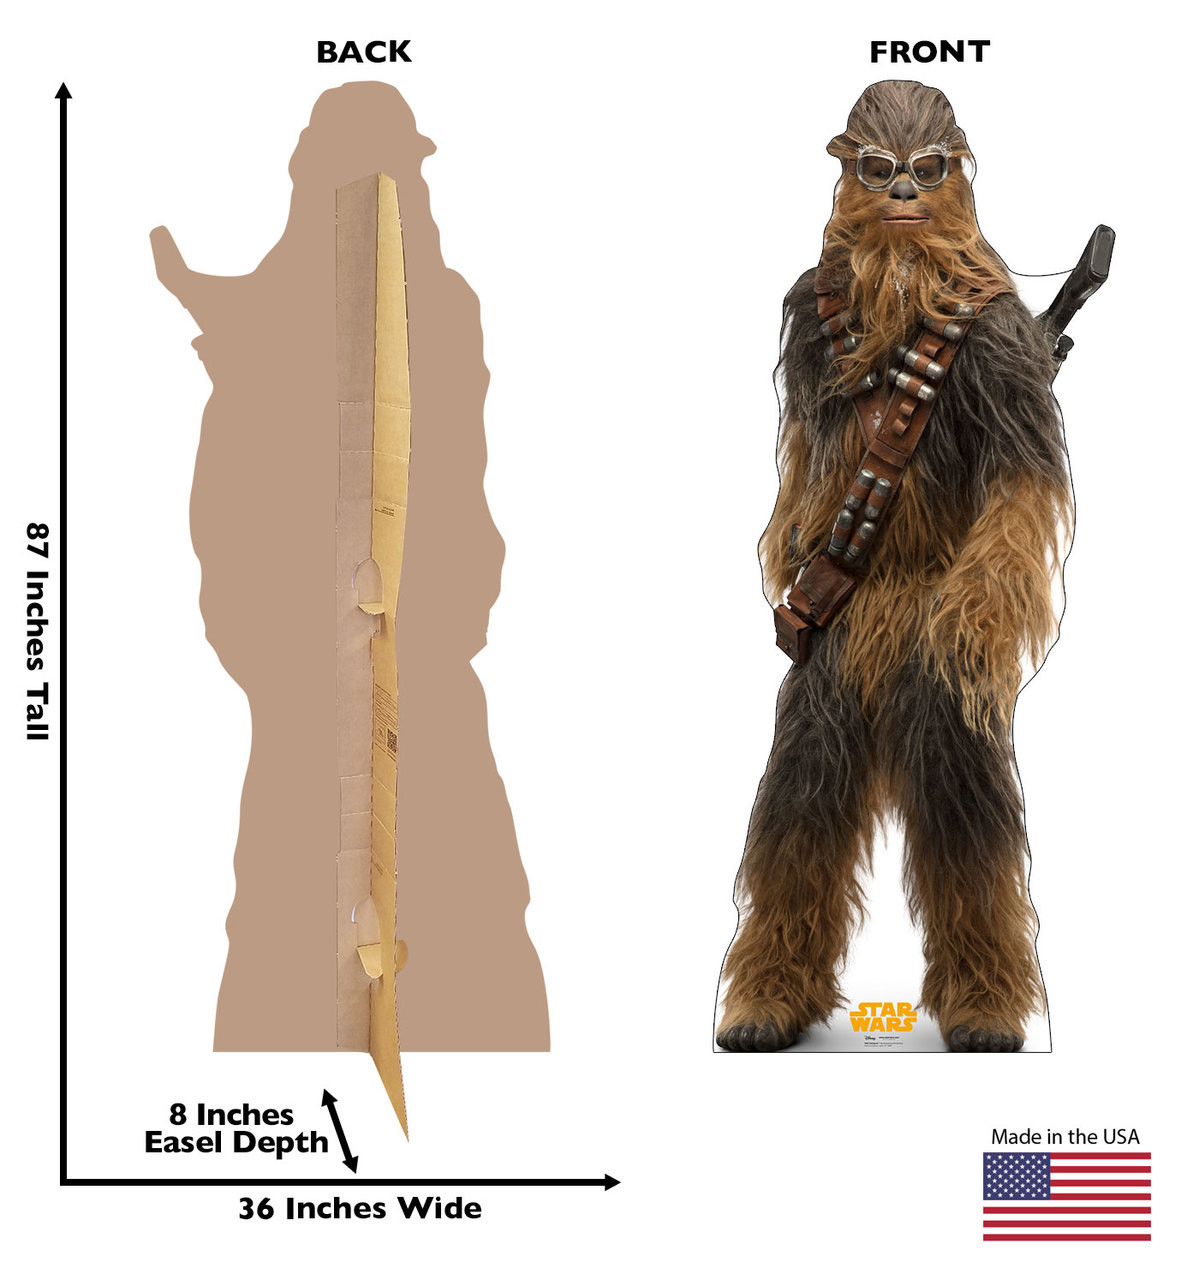 Chewbacca™ Life-size cardboard standee back and front with dimensions.